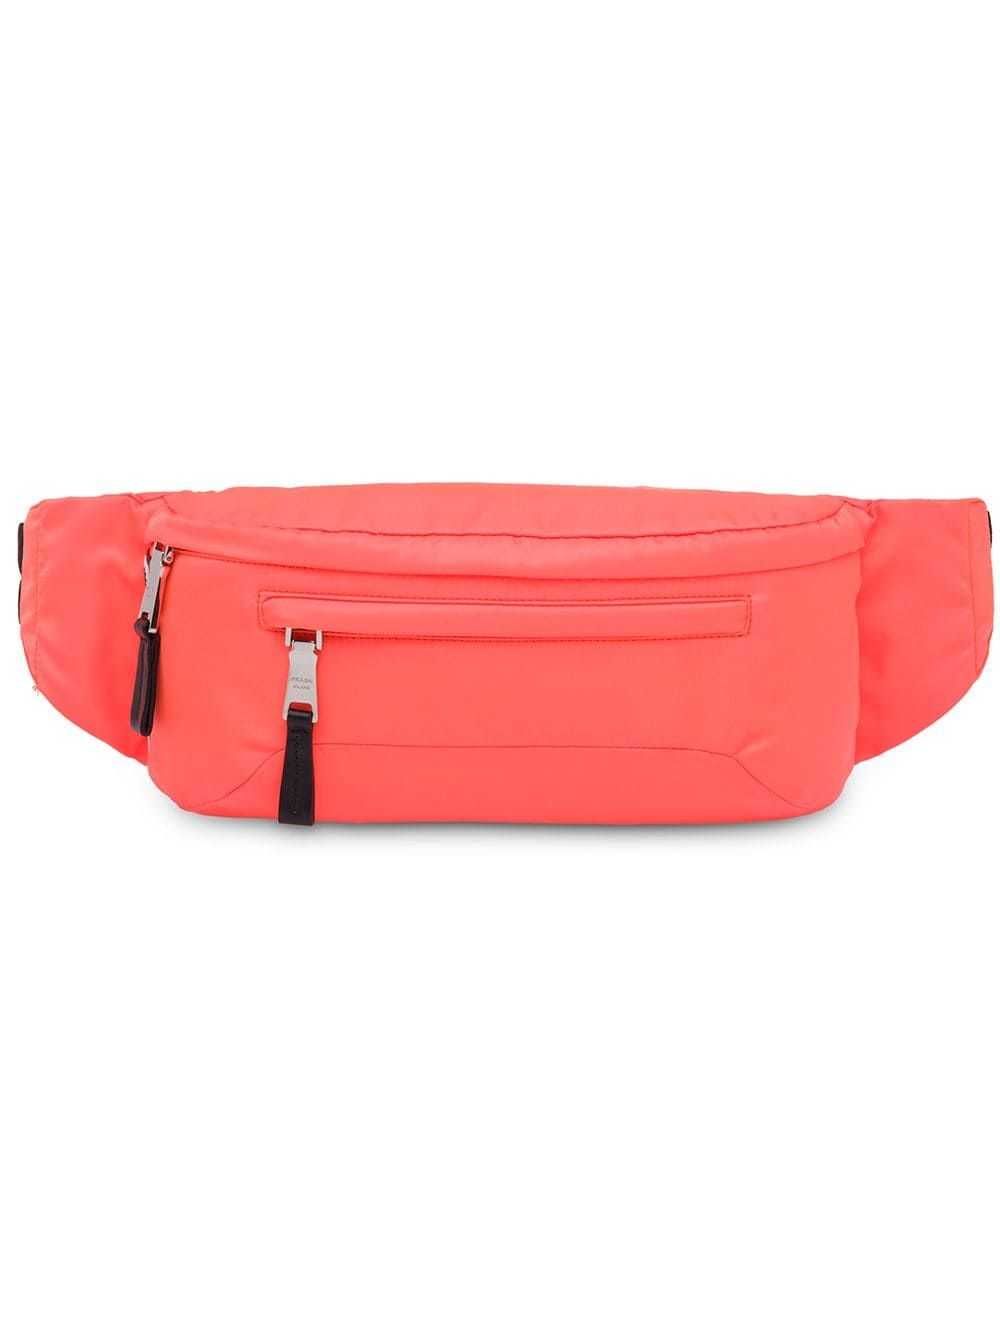 PRADA PRADA TECHNICAL FABRIC BELT BAG - ORANGE.  prada  bags  belt bags   nylon 6bf85817e5